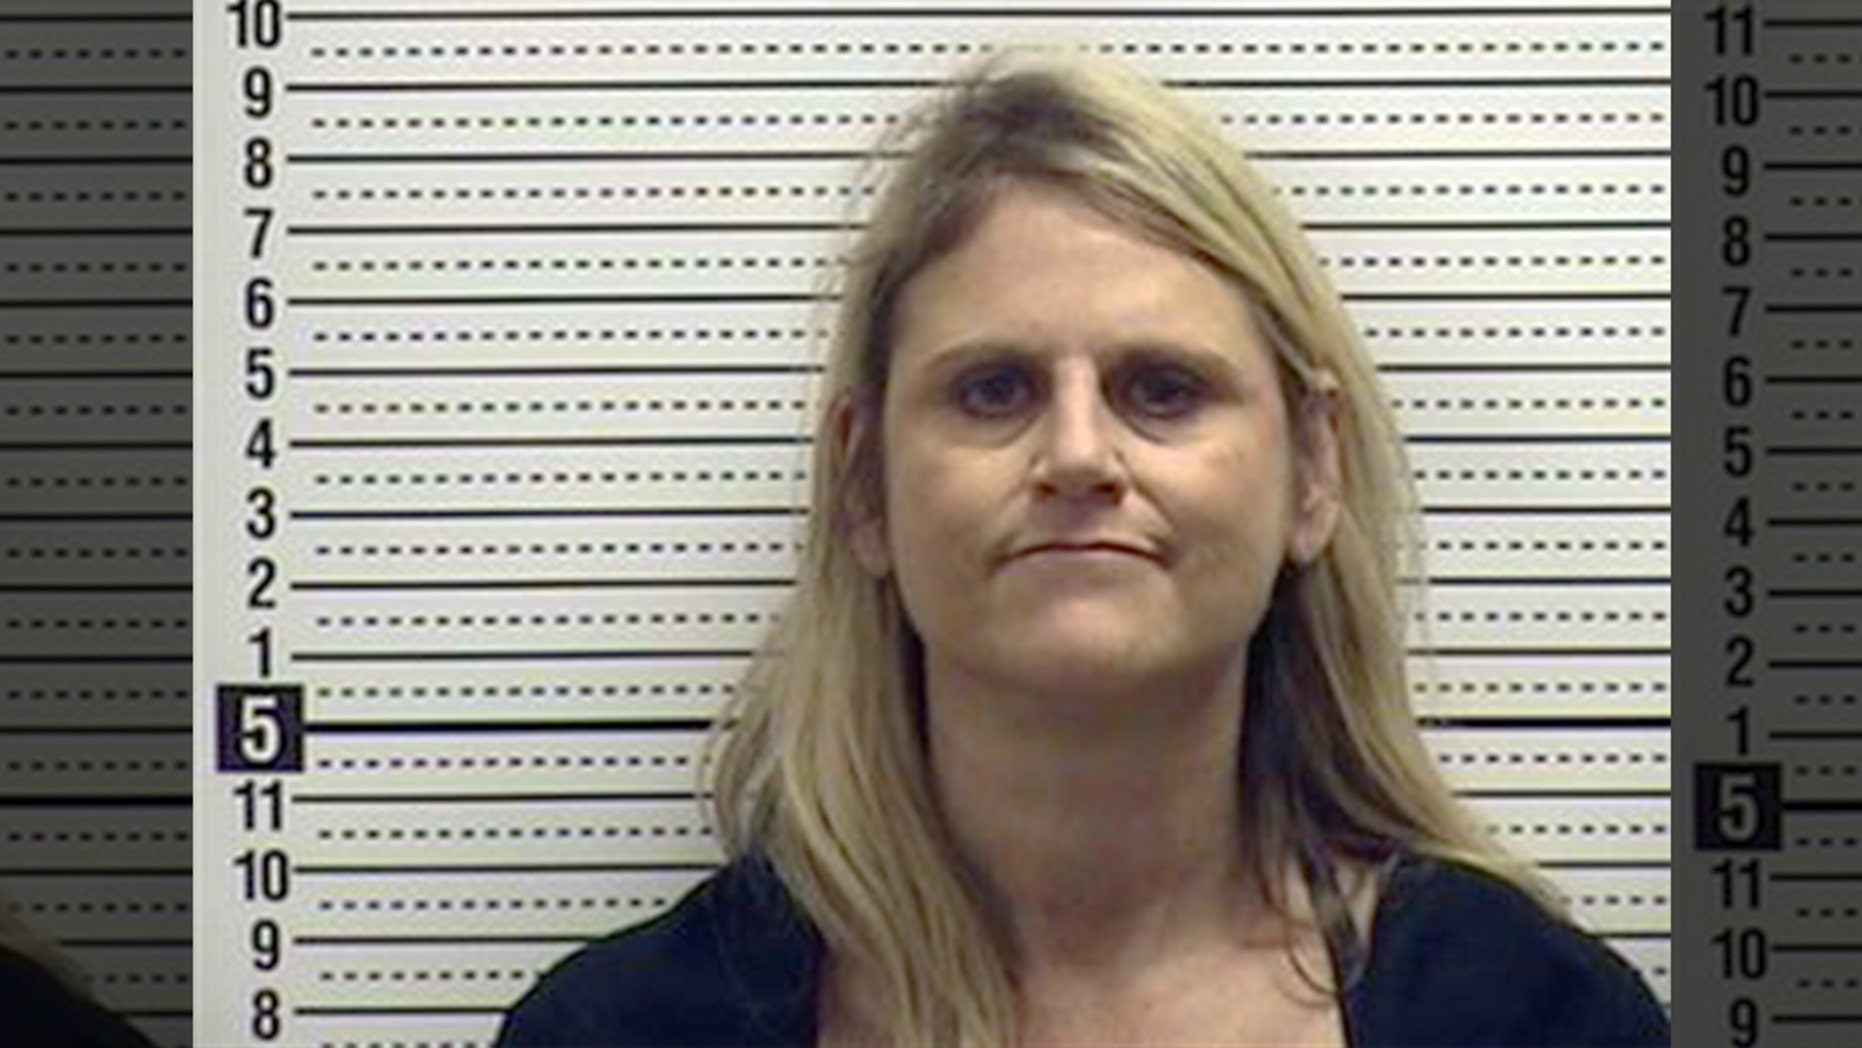 Susan Westwood, 51, reportedly turned herself in to police in Sunset Beach, Nort Carolina on Saturday after she was seen ranting racist remarks in a viral video.